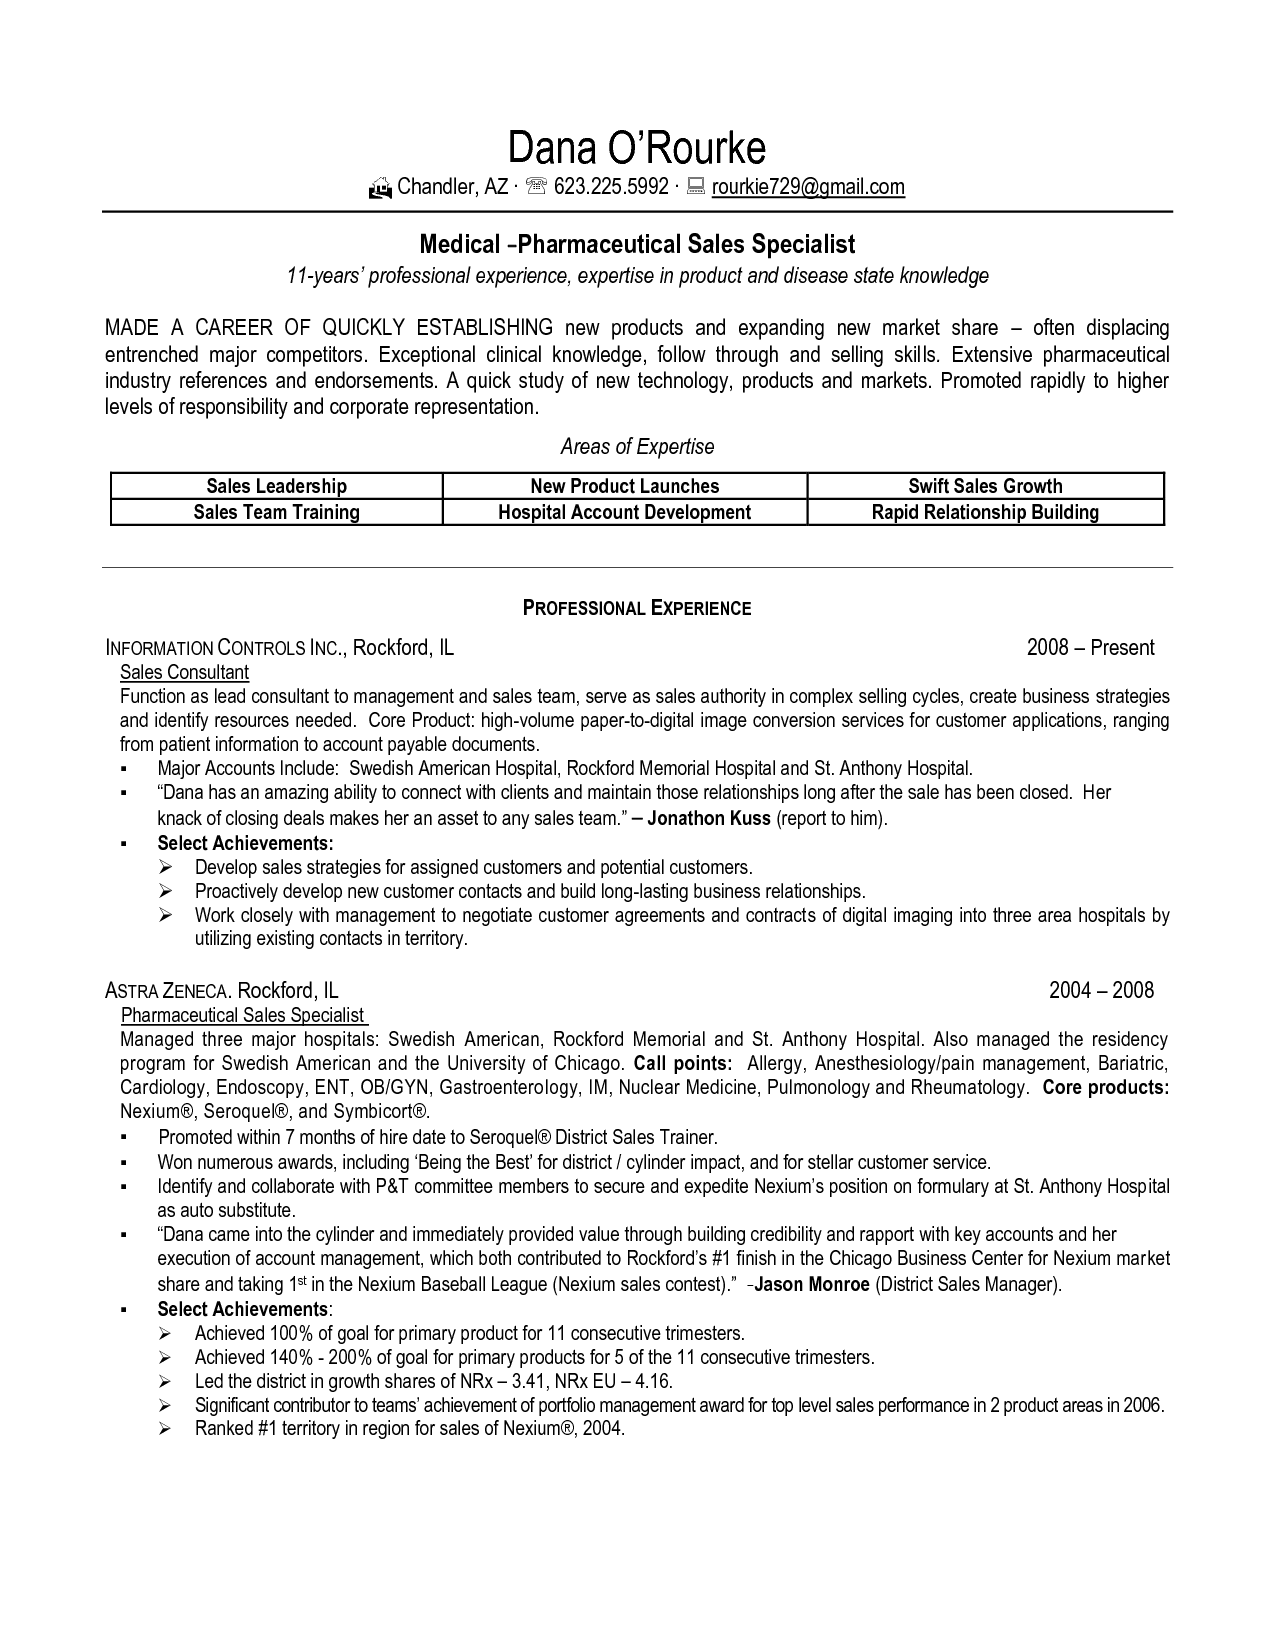 sample resume for pharmaceutical industry sample resume for pharmaceutical industry sample resume for pharmaceutical sales sample - Sample Pharmaceutical Sales Resume Cover Letter